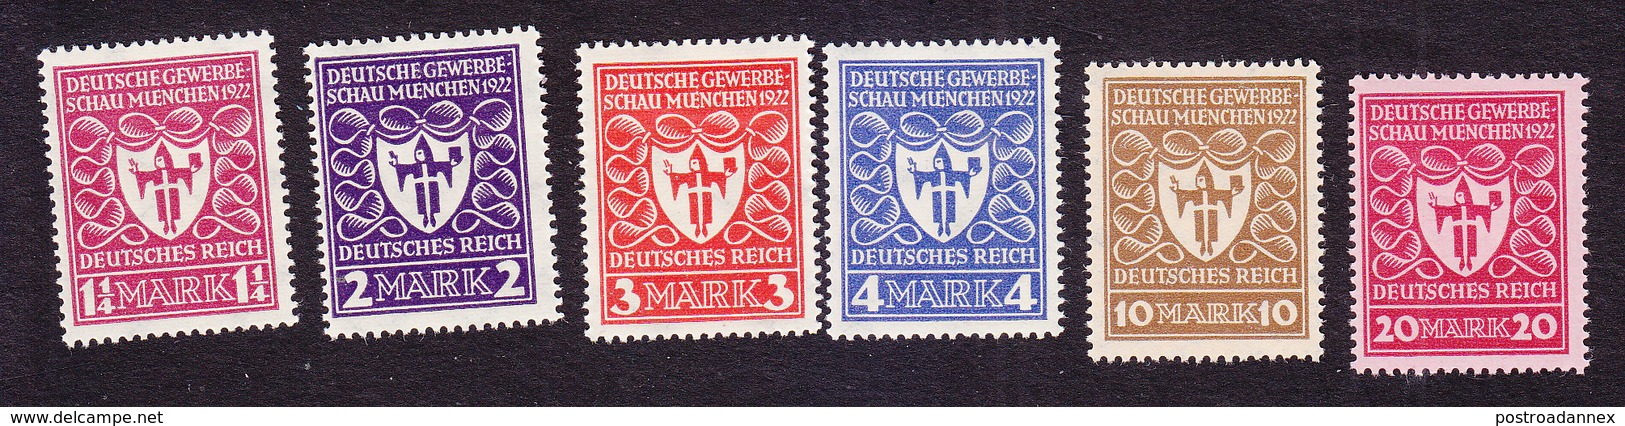 Germany, Scott #212-217, Mint Hinged, Arms Of Munich, Issued 1922 - Allemagne